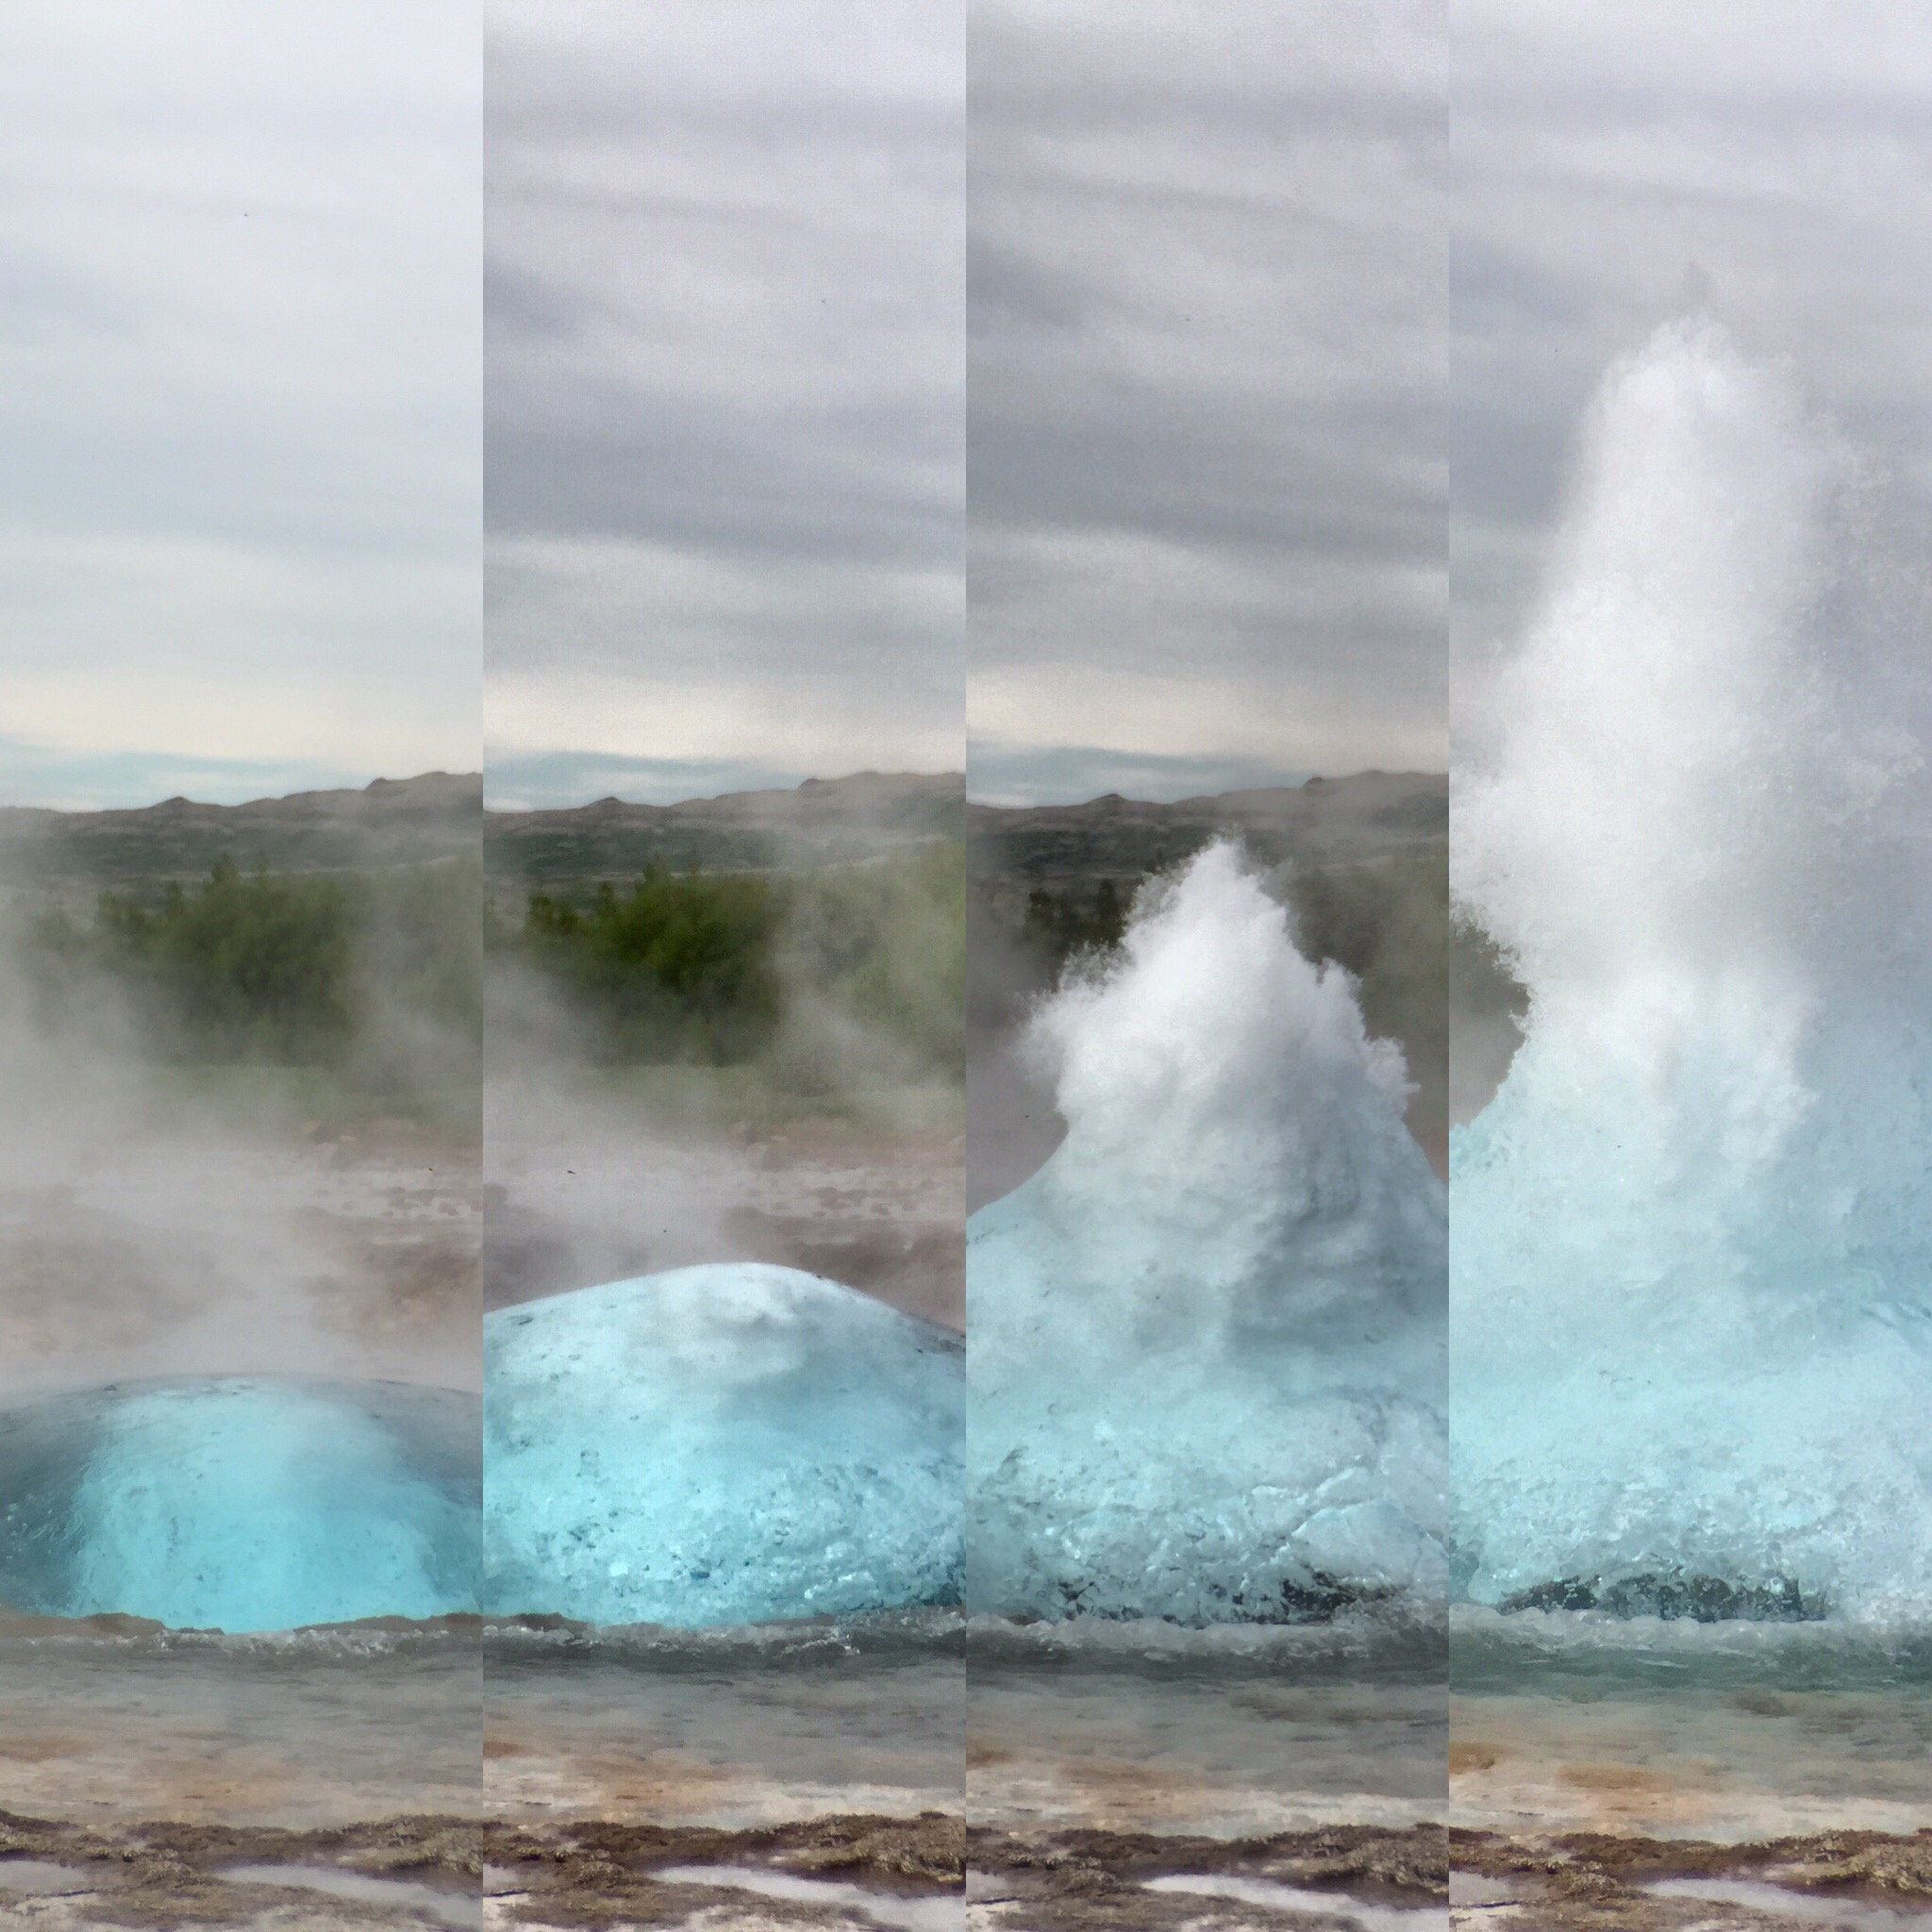 Geyser Eruption captured in burst mode with an iPhone 6 Plus.